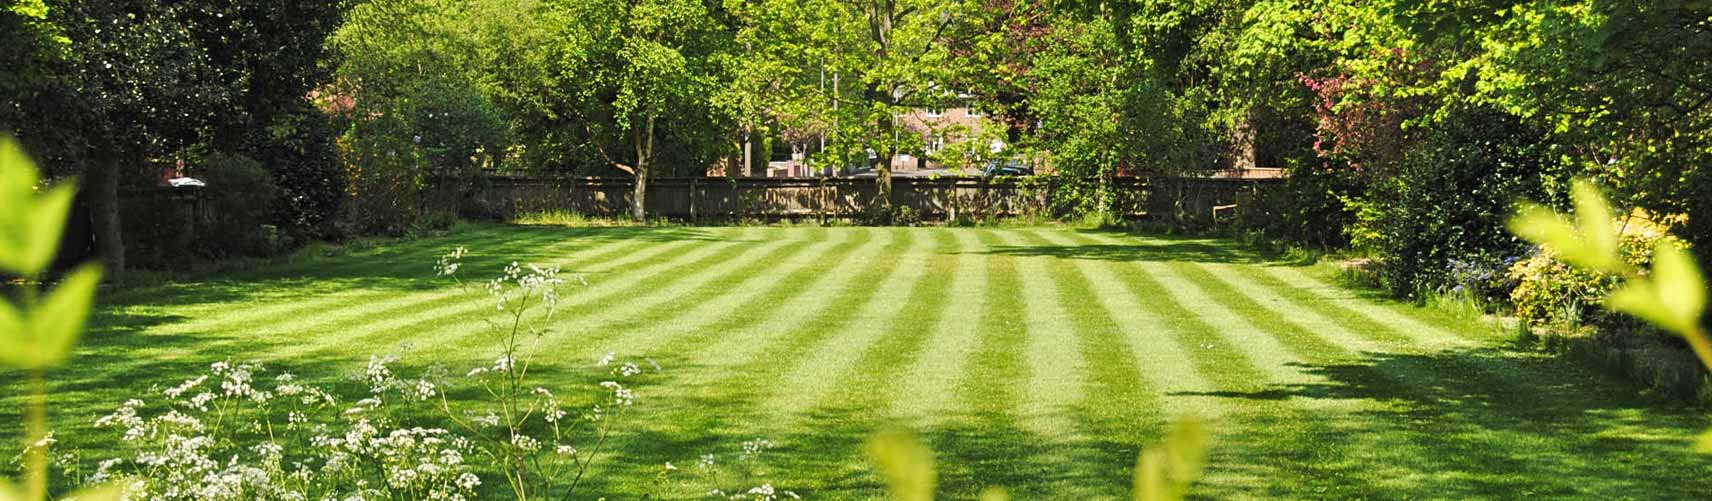 Washington Landscaping Company, Landscaper and Lawn Care Services